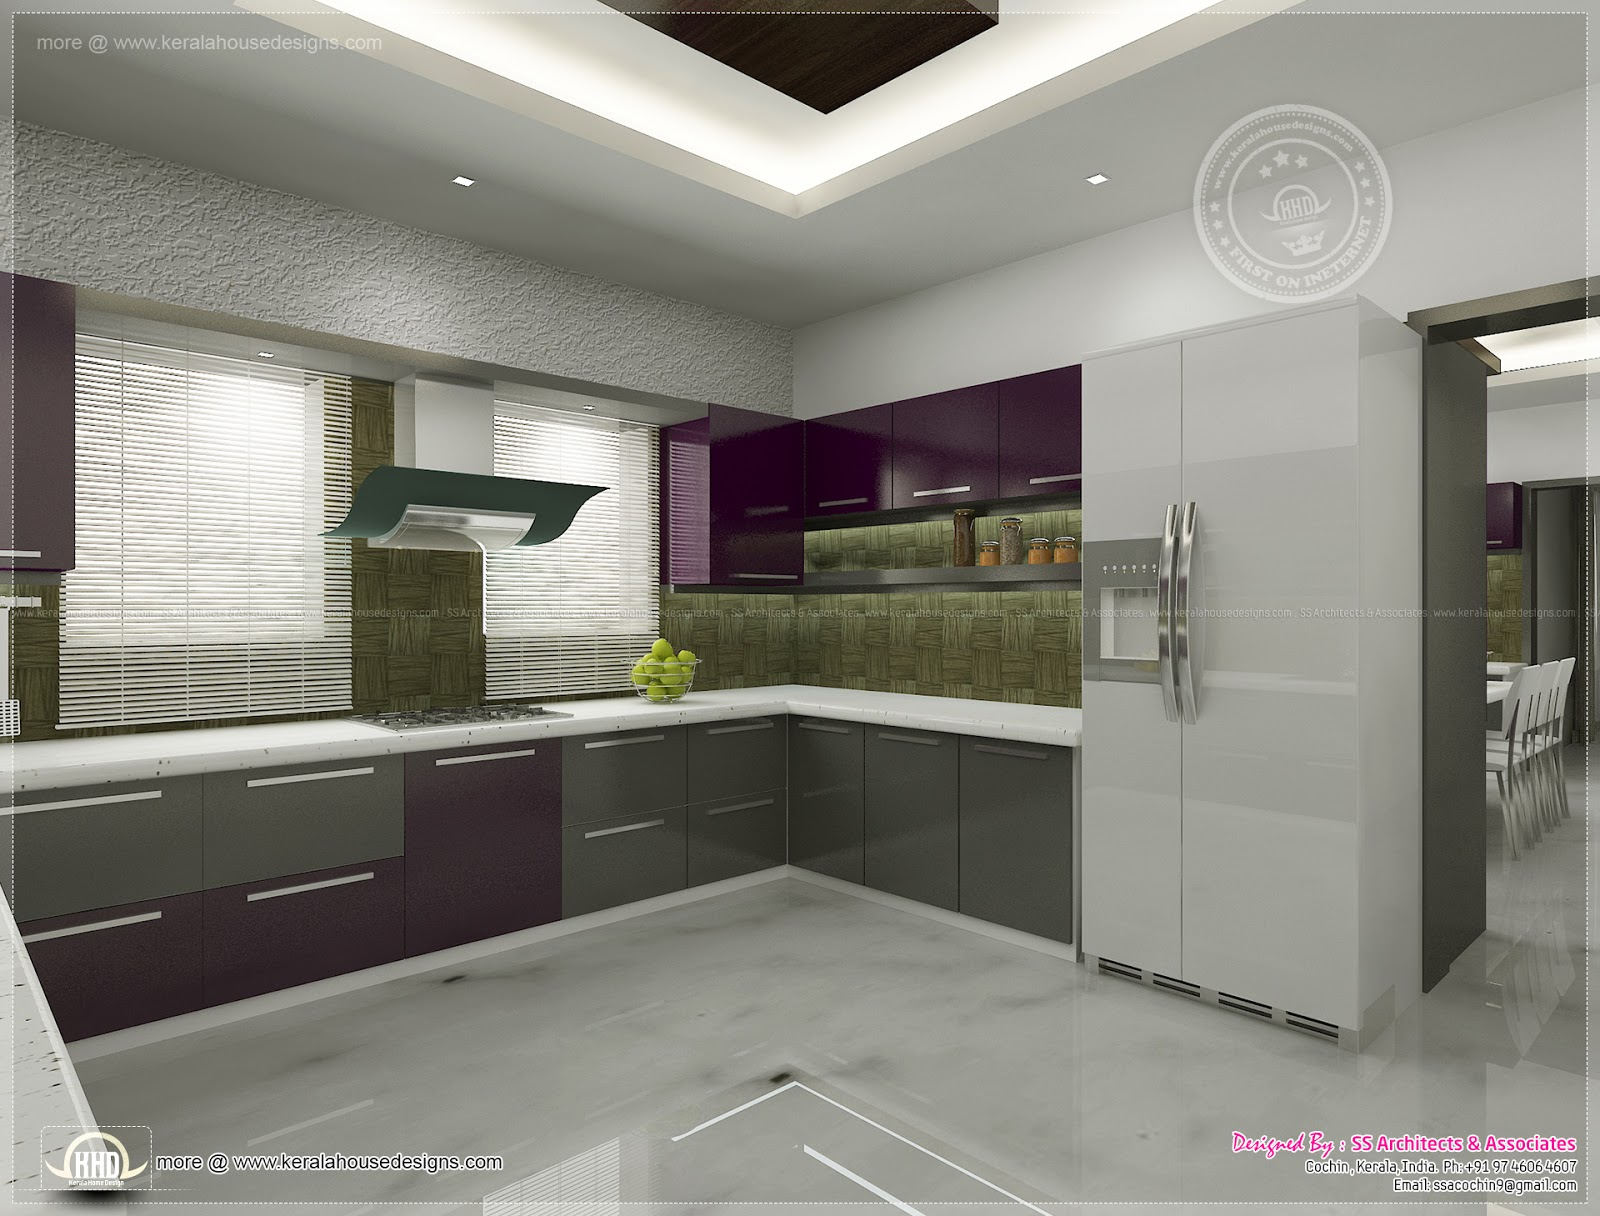 Kitchen interior views by ss architects cochin kerala for Kitchen interior design india